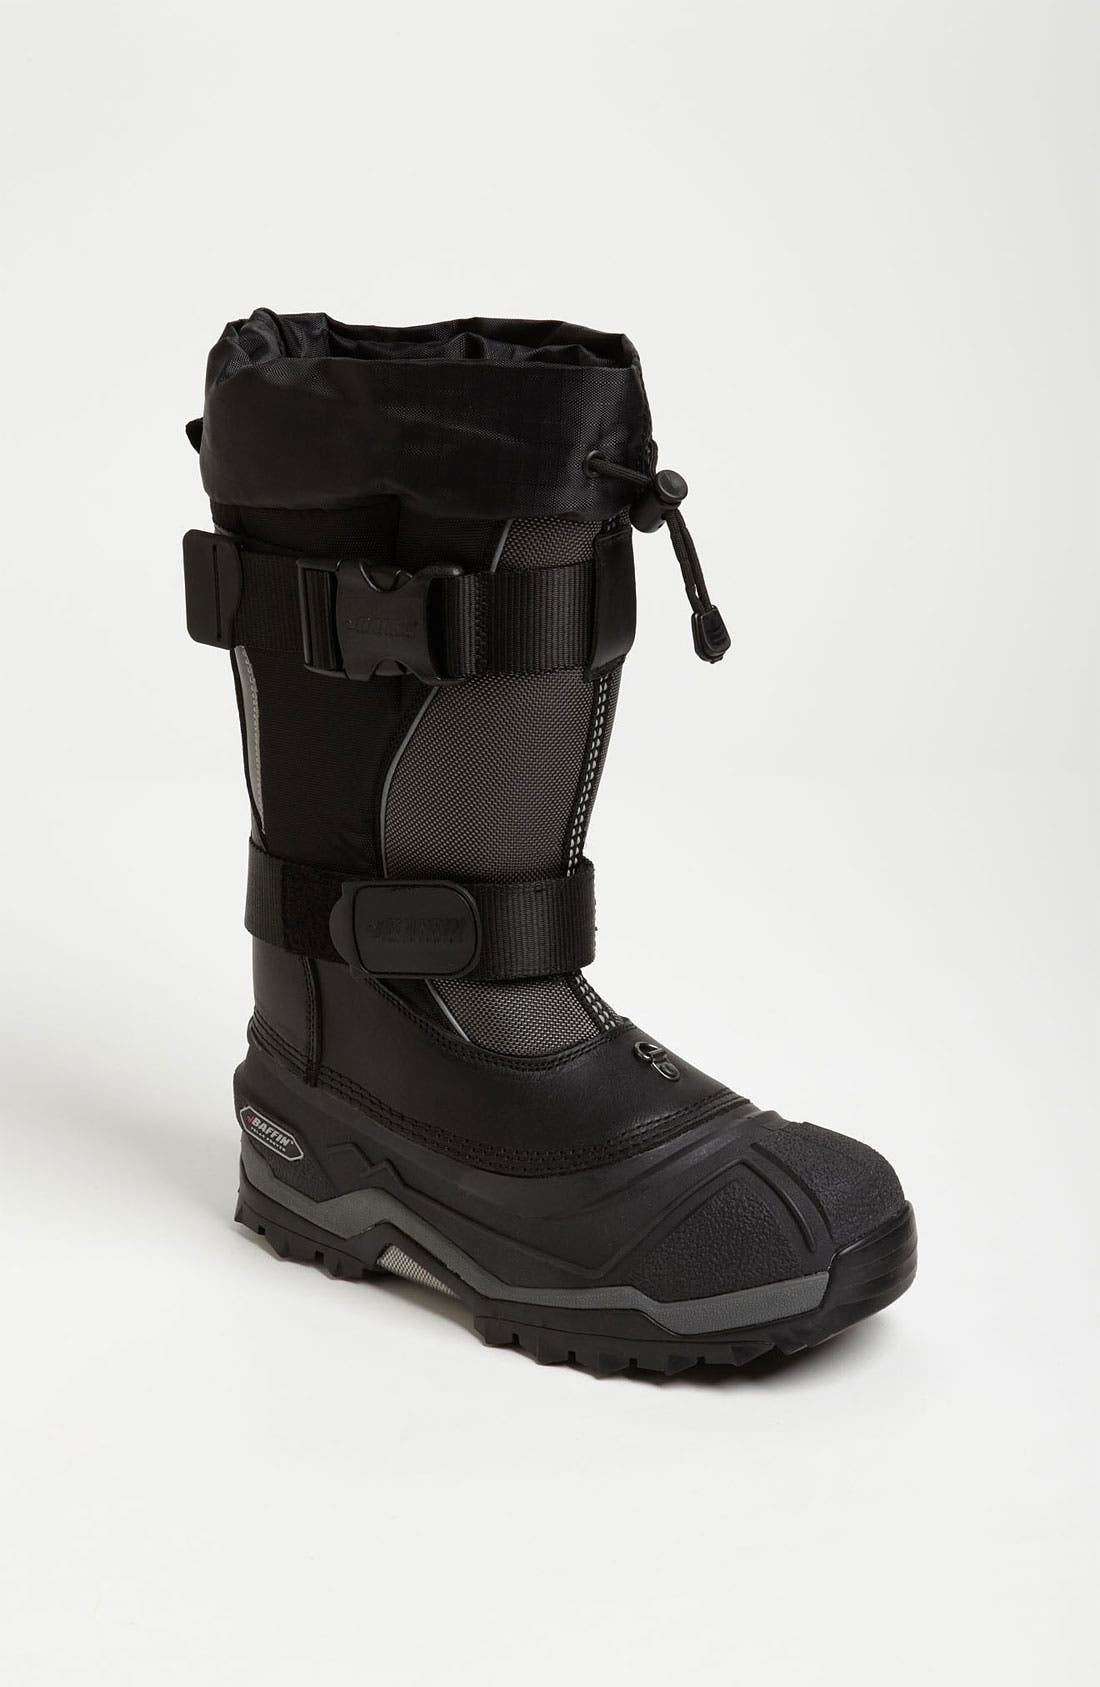 Alternate Image 1 Selected - Baffin 'Selkirk' Snow Boot (Online Only)